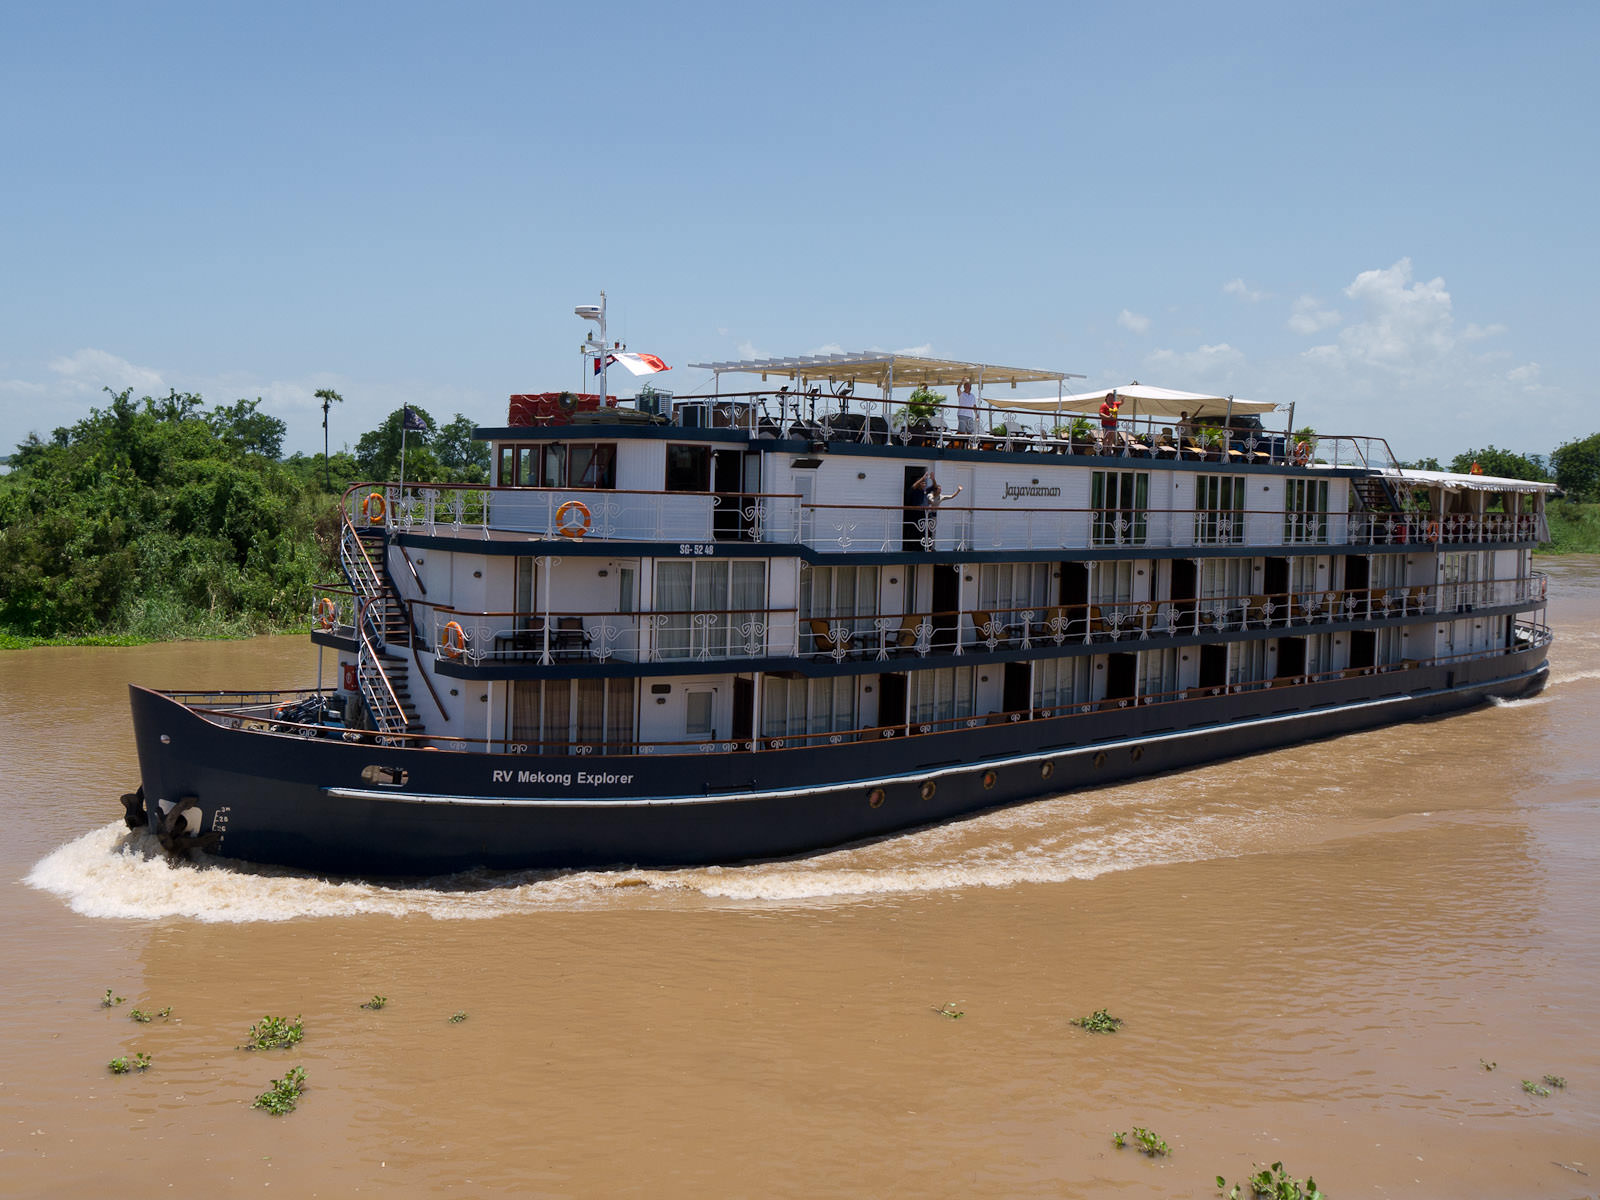 Our sister ship, the RV Mekong Explorer